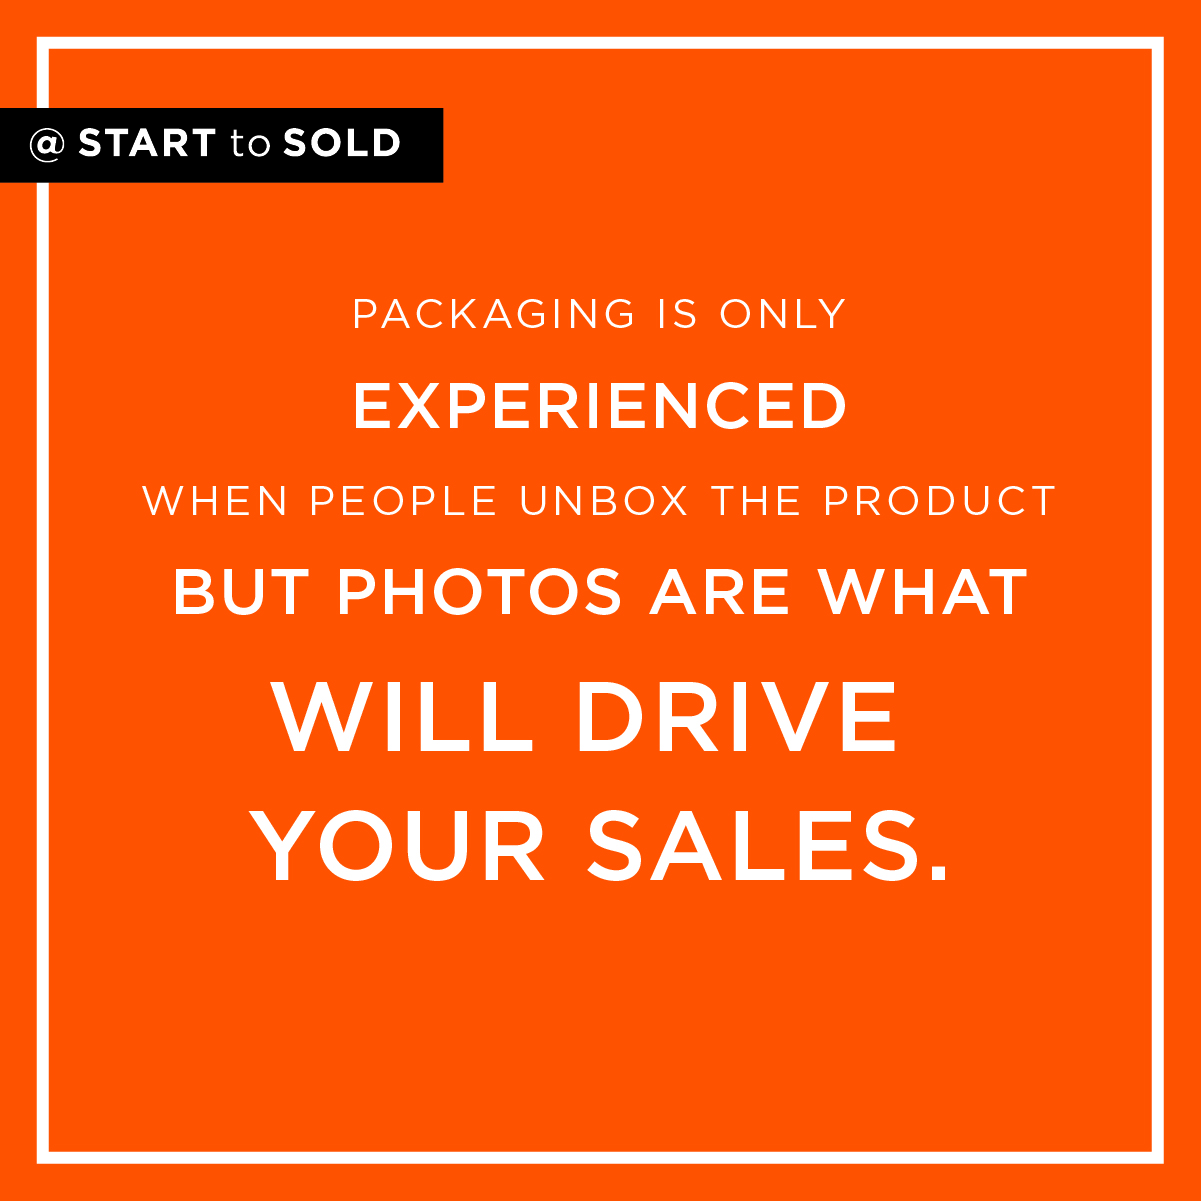 Packaging on a product is an experience that lasts for just a few minutes. Pictures are what will drive your sales.